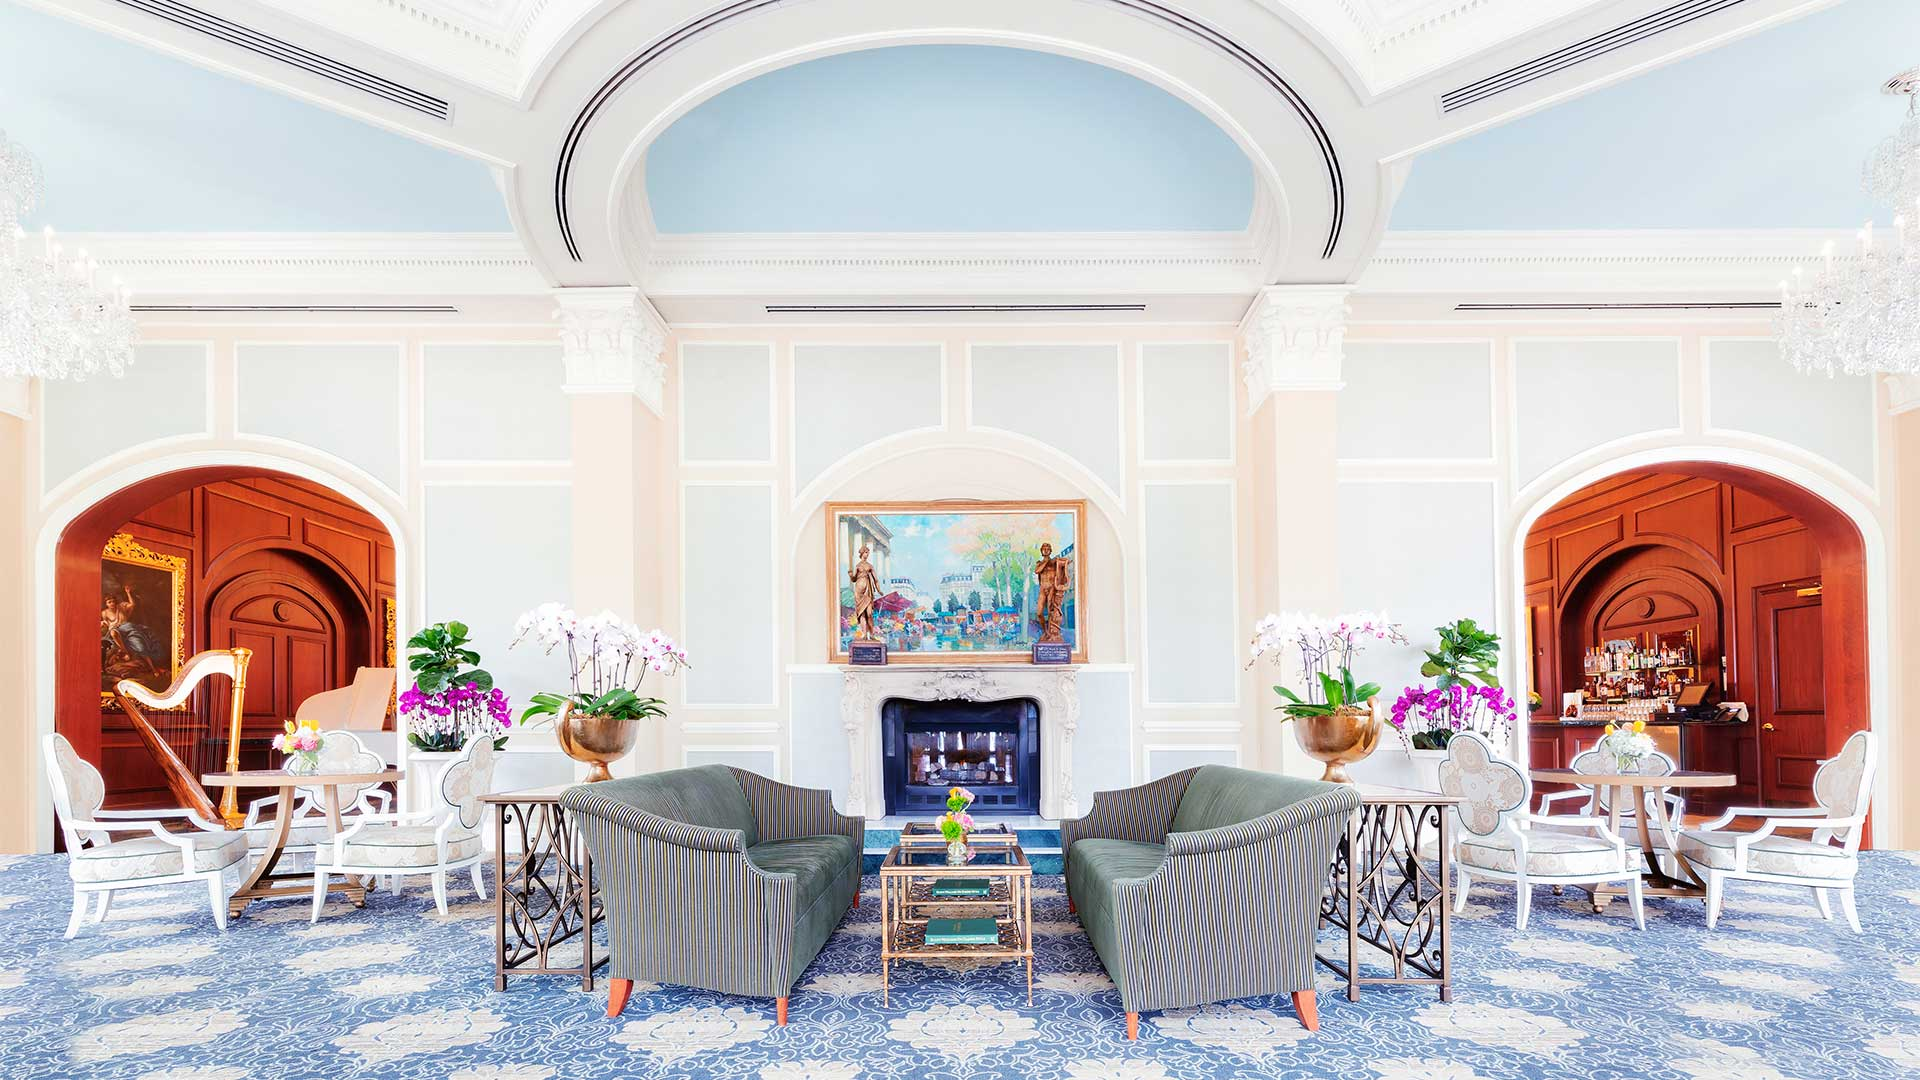 large blue room with lots of seating and art